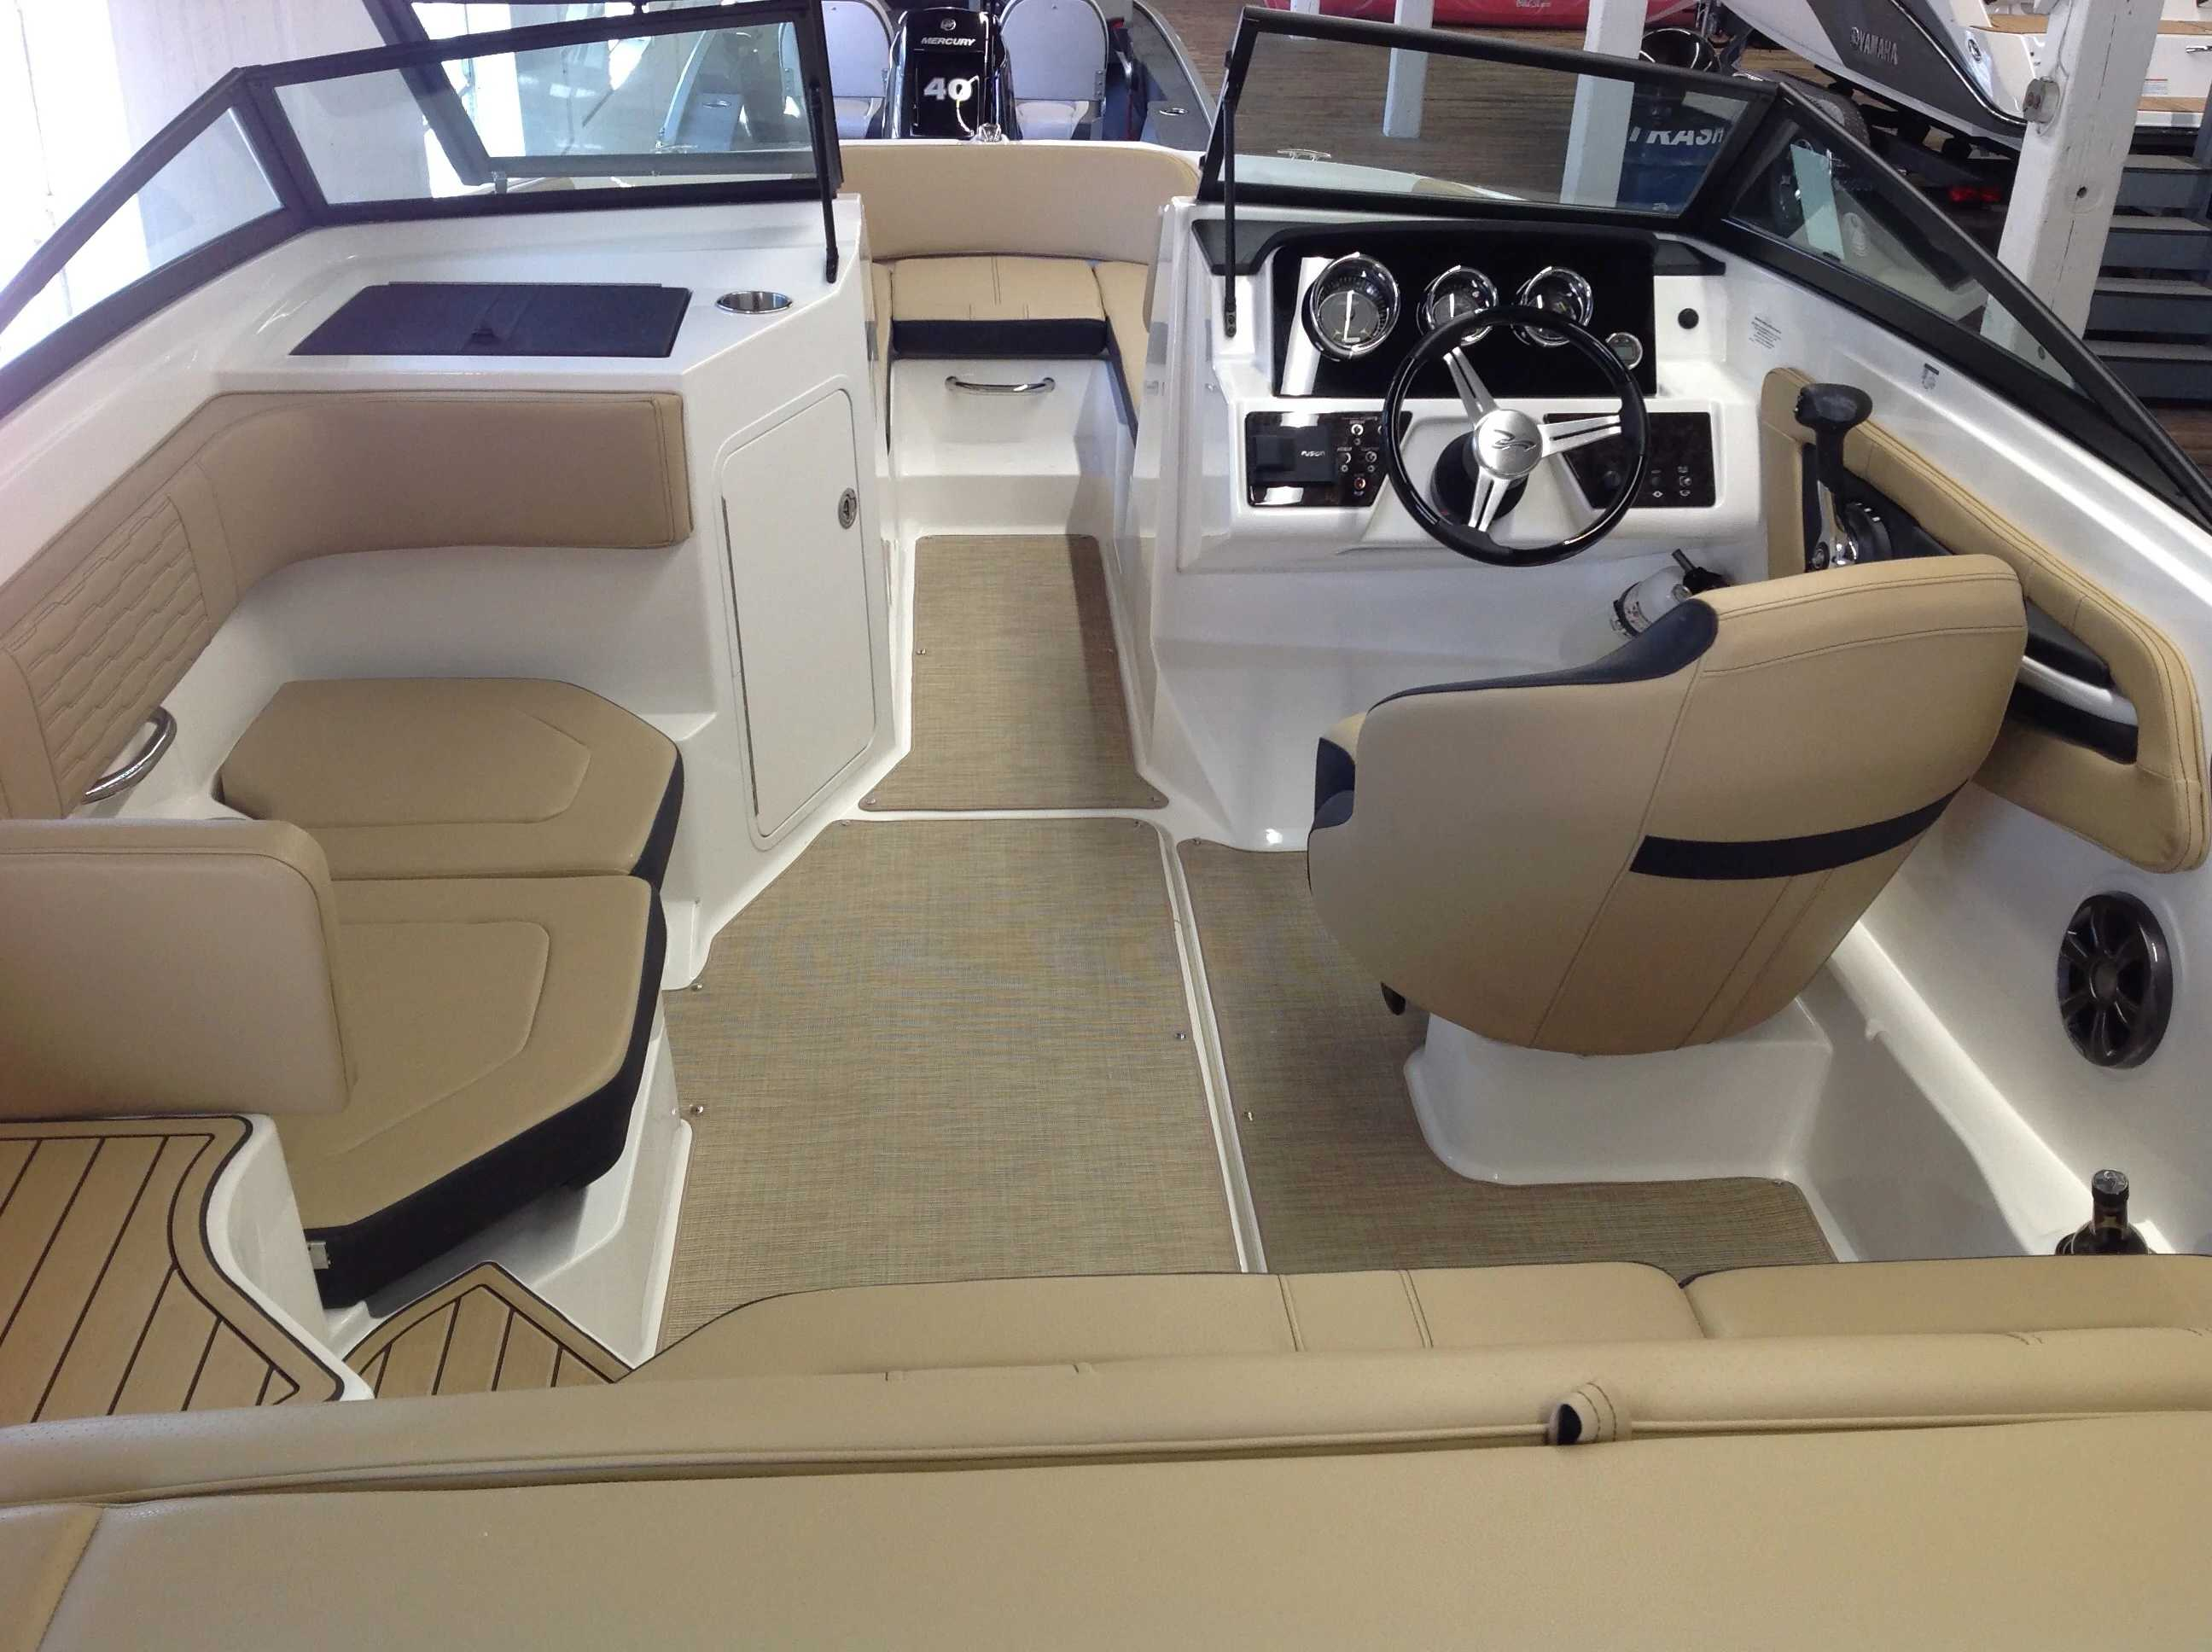 2021 Sea Ray boat for sale, model of the boat is 190 spxo & Image # 13 of 14